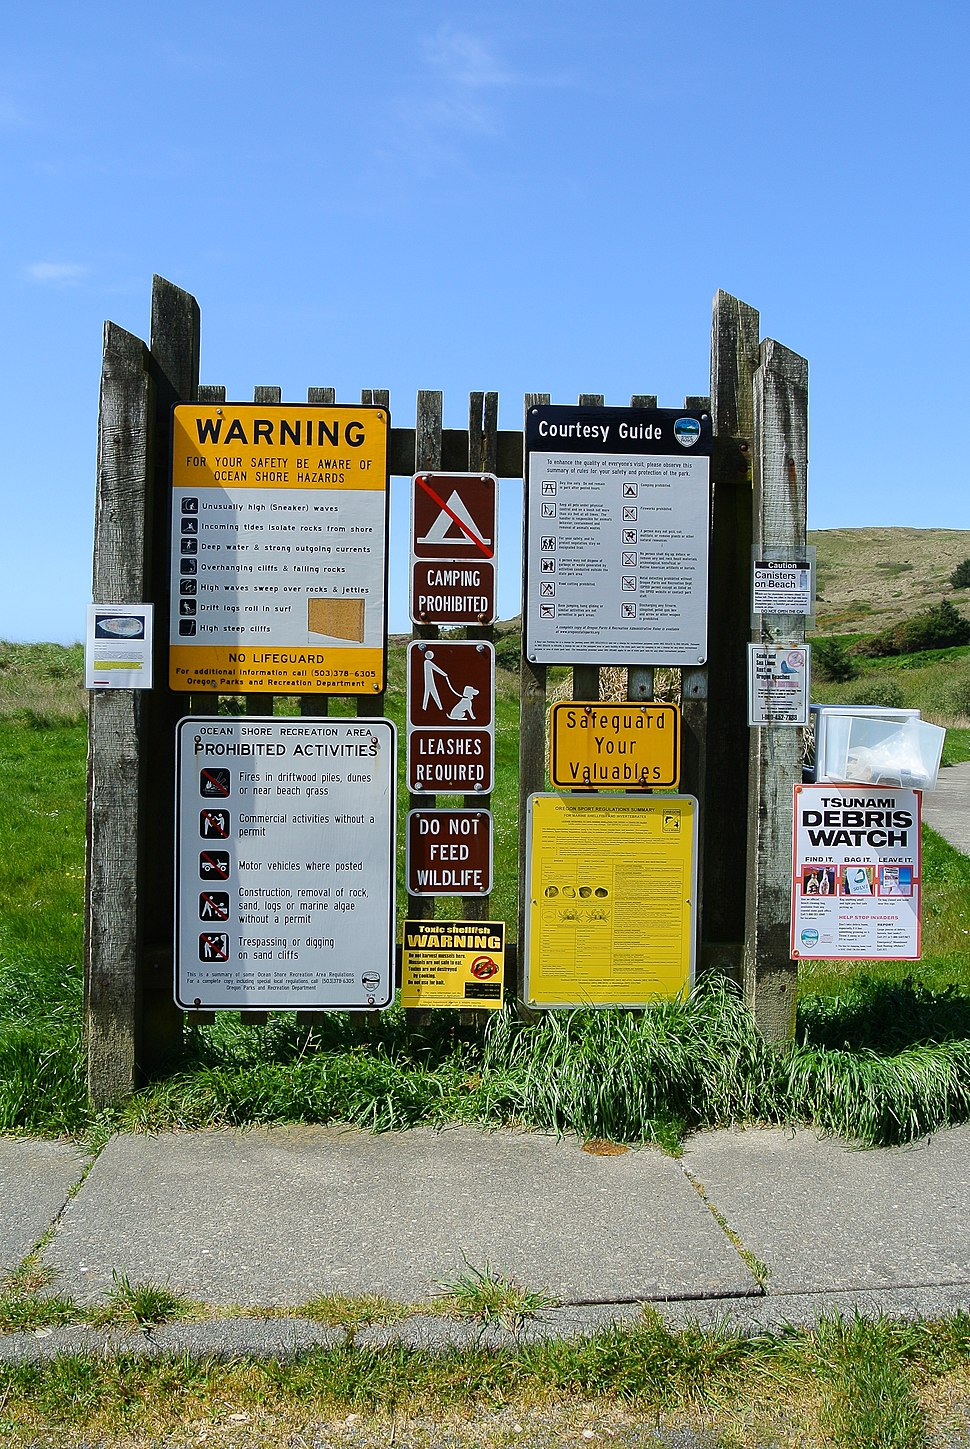 Safety instructions on Lone Ranch Beach